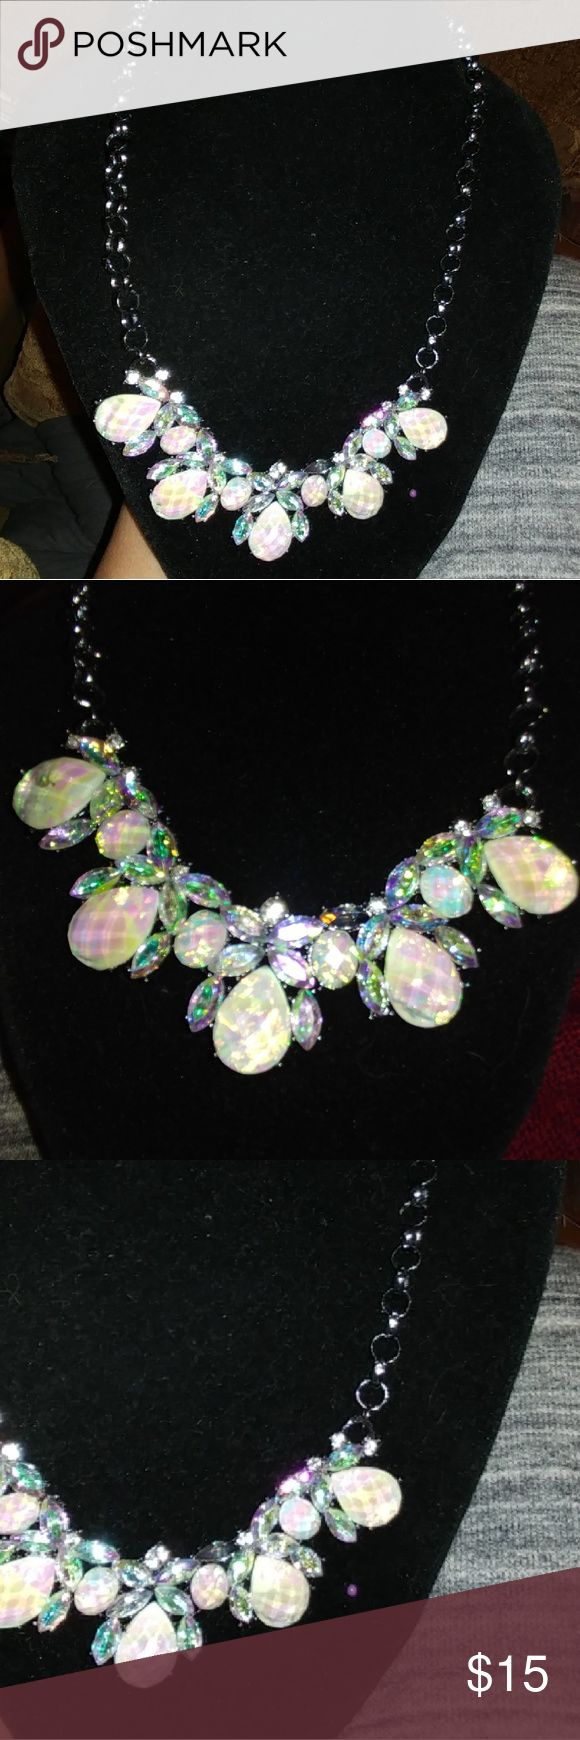 tornasol aurora borealis necklace from Ashley Coop tornasol aurora borealis necklace from ashley cooper Size approximate 16 inches Ashley Cooper Jewelry Necklaces